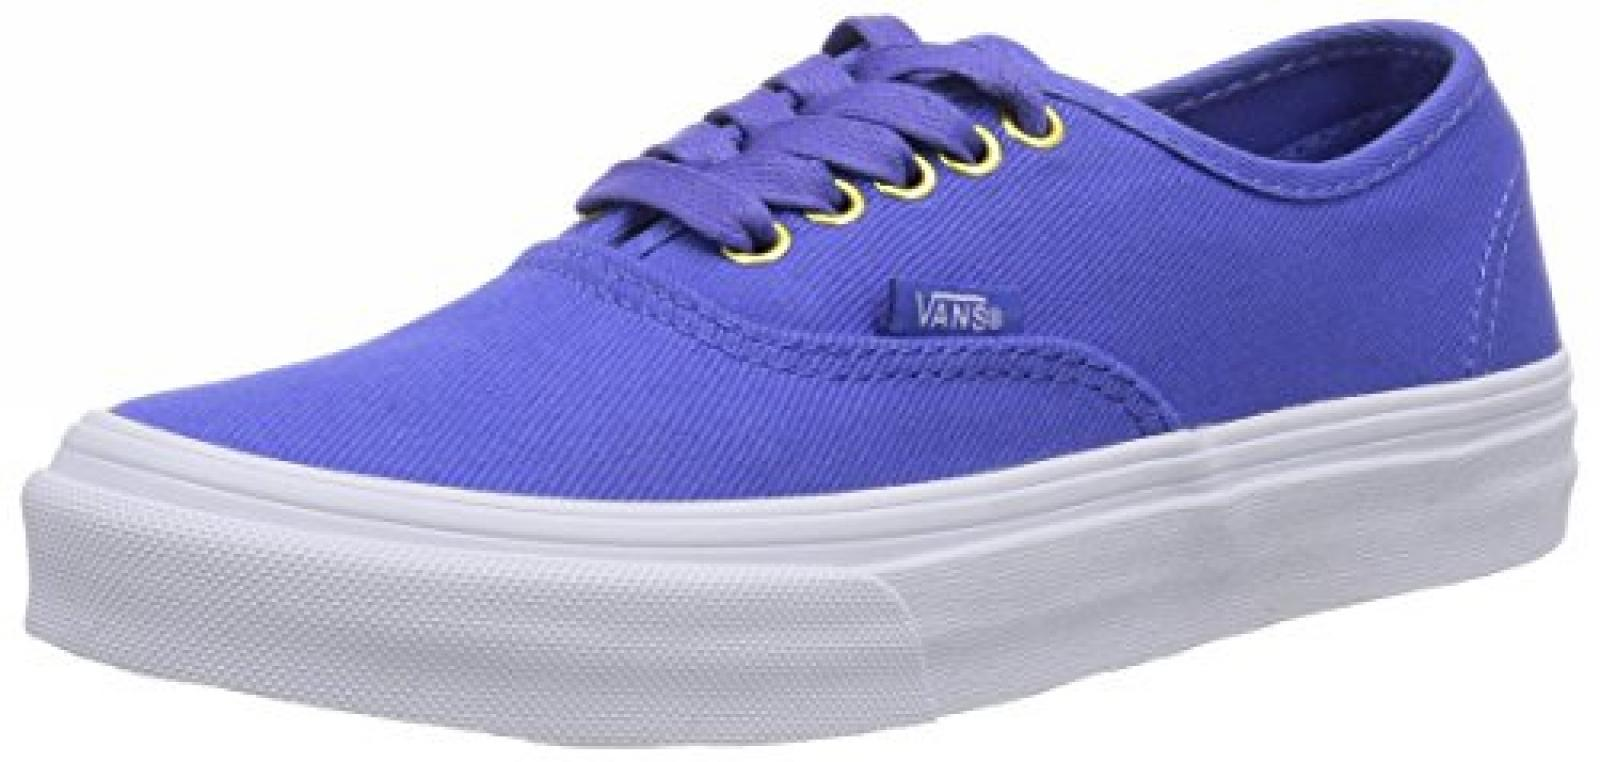 Vans U AUTHENTIC SLIM POP TWIL Unisex-Erwachsene Sneakers